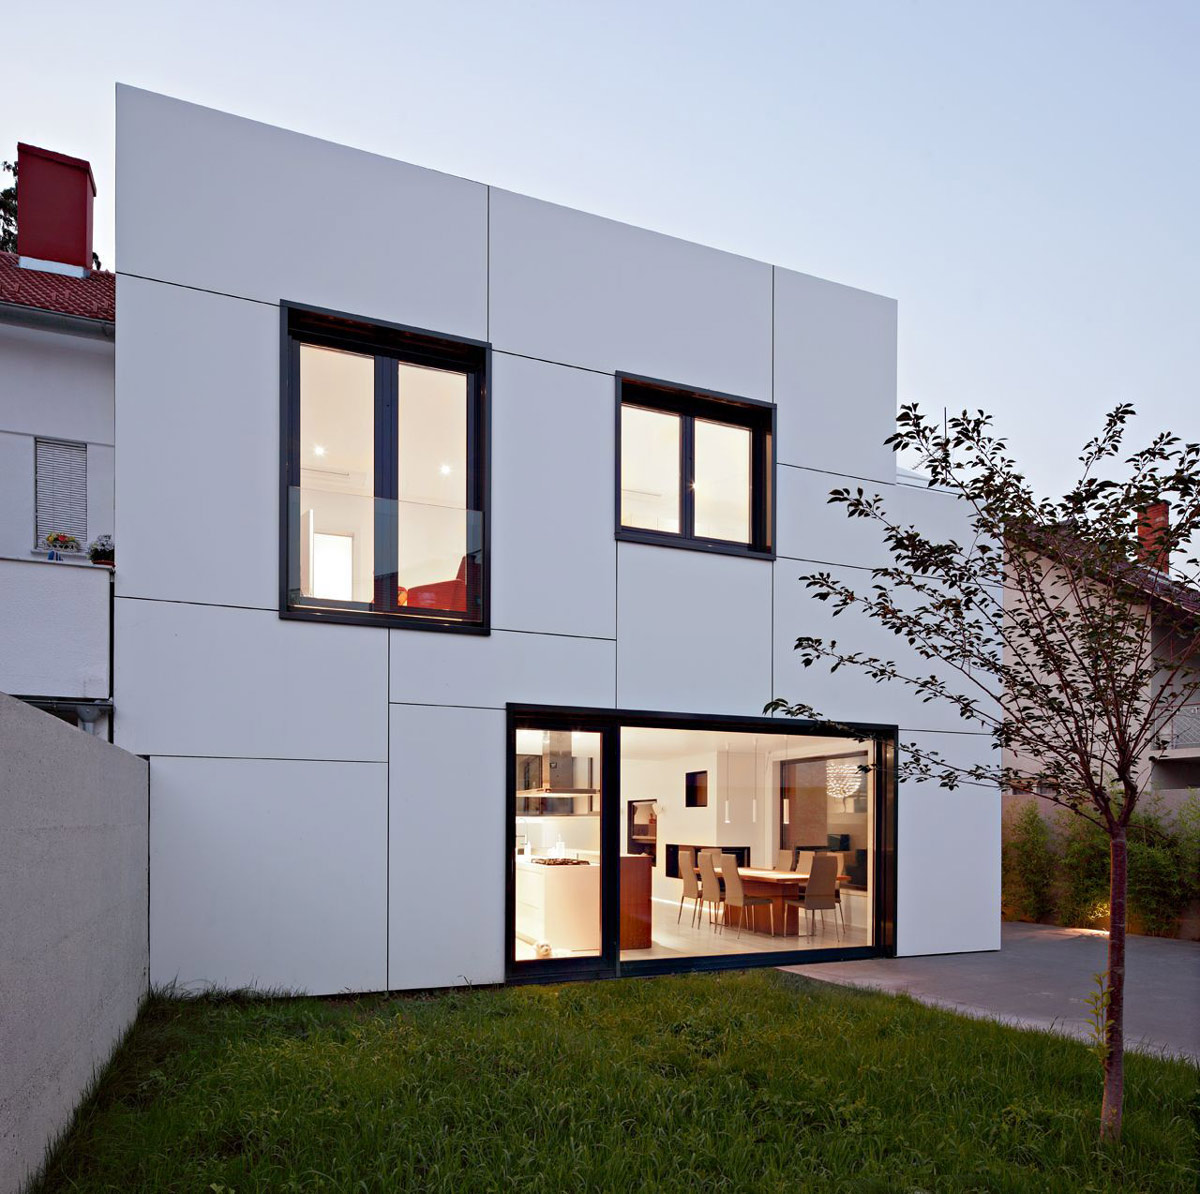 Garden, Patio Doors, A+A House in Zagreb, Croatia by DVA Arhitekta